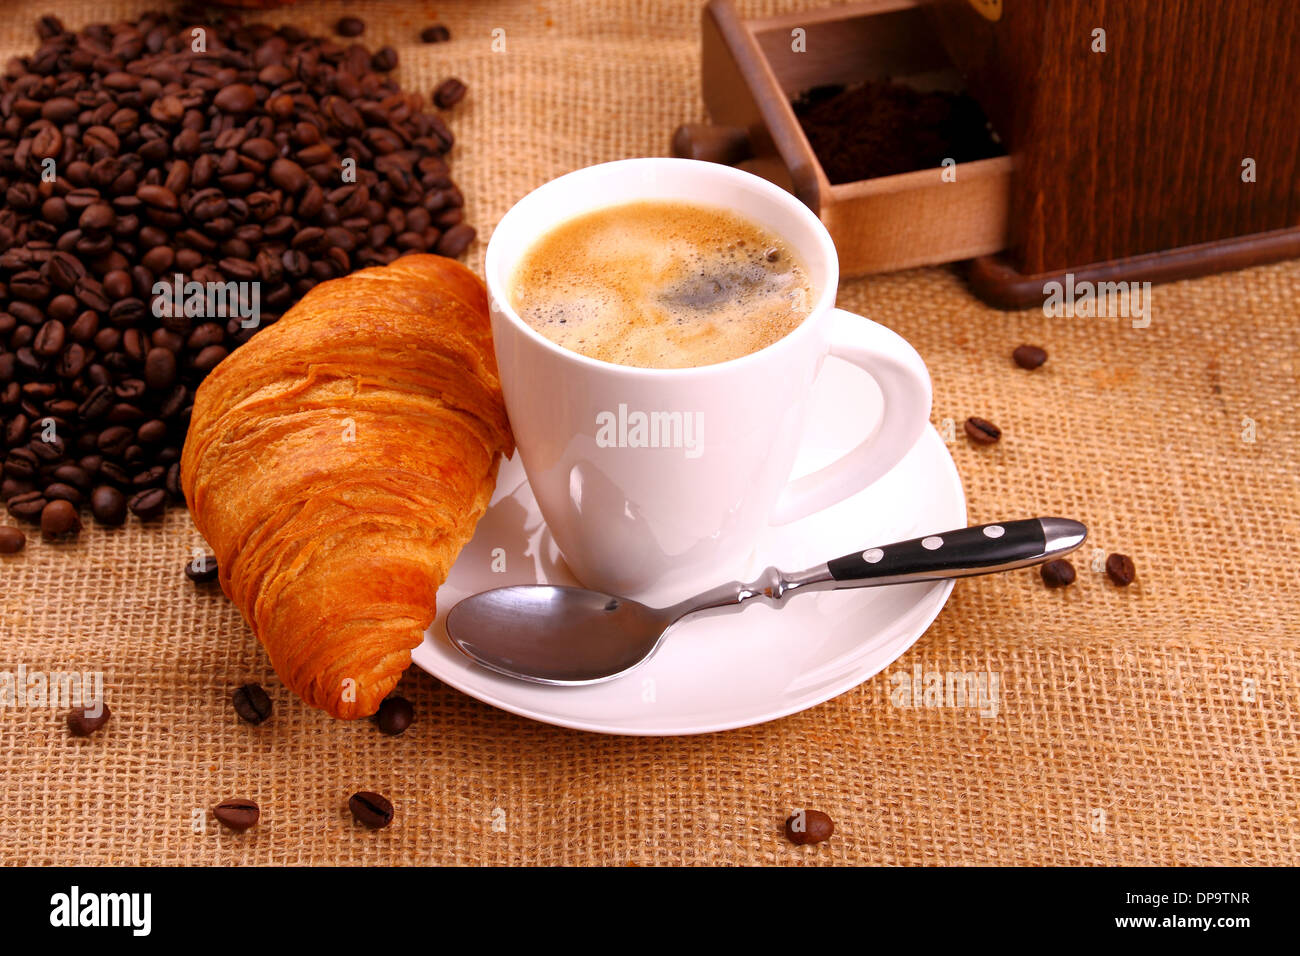 Coffee in white cup and croissant, close up - Stock Image